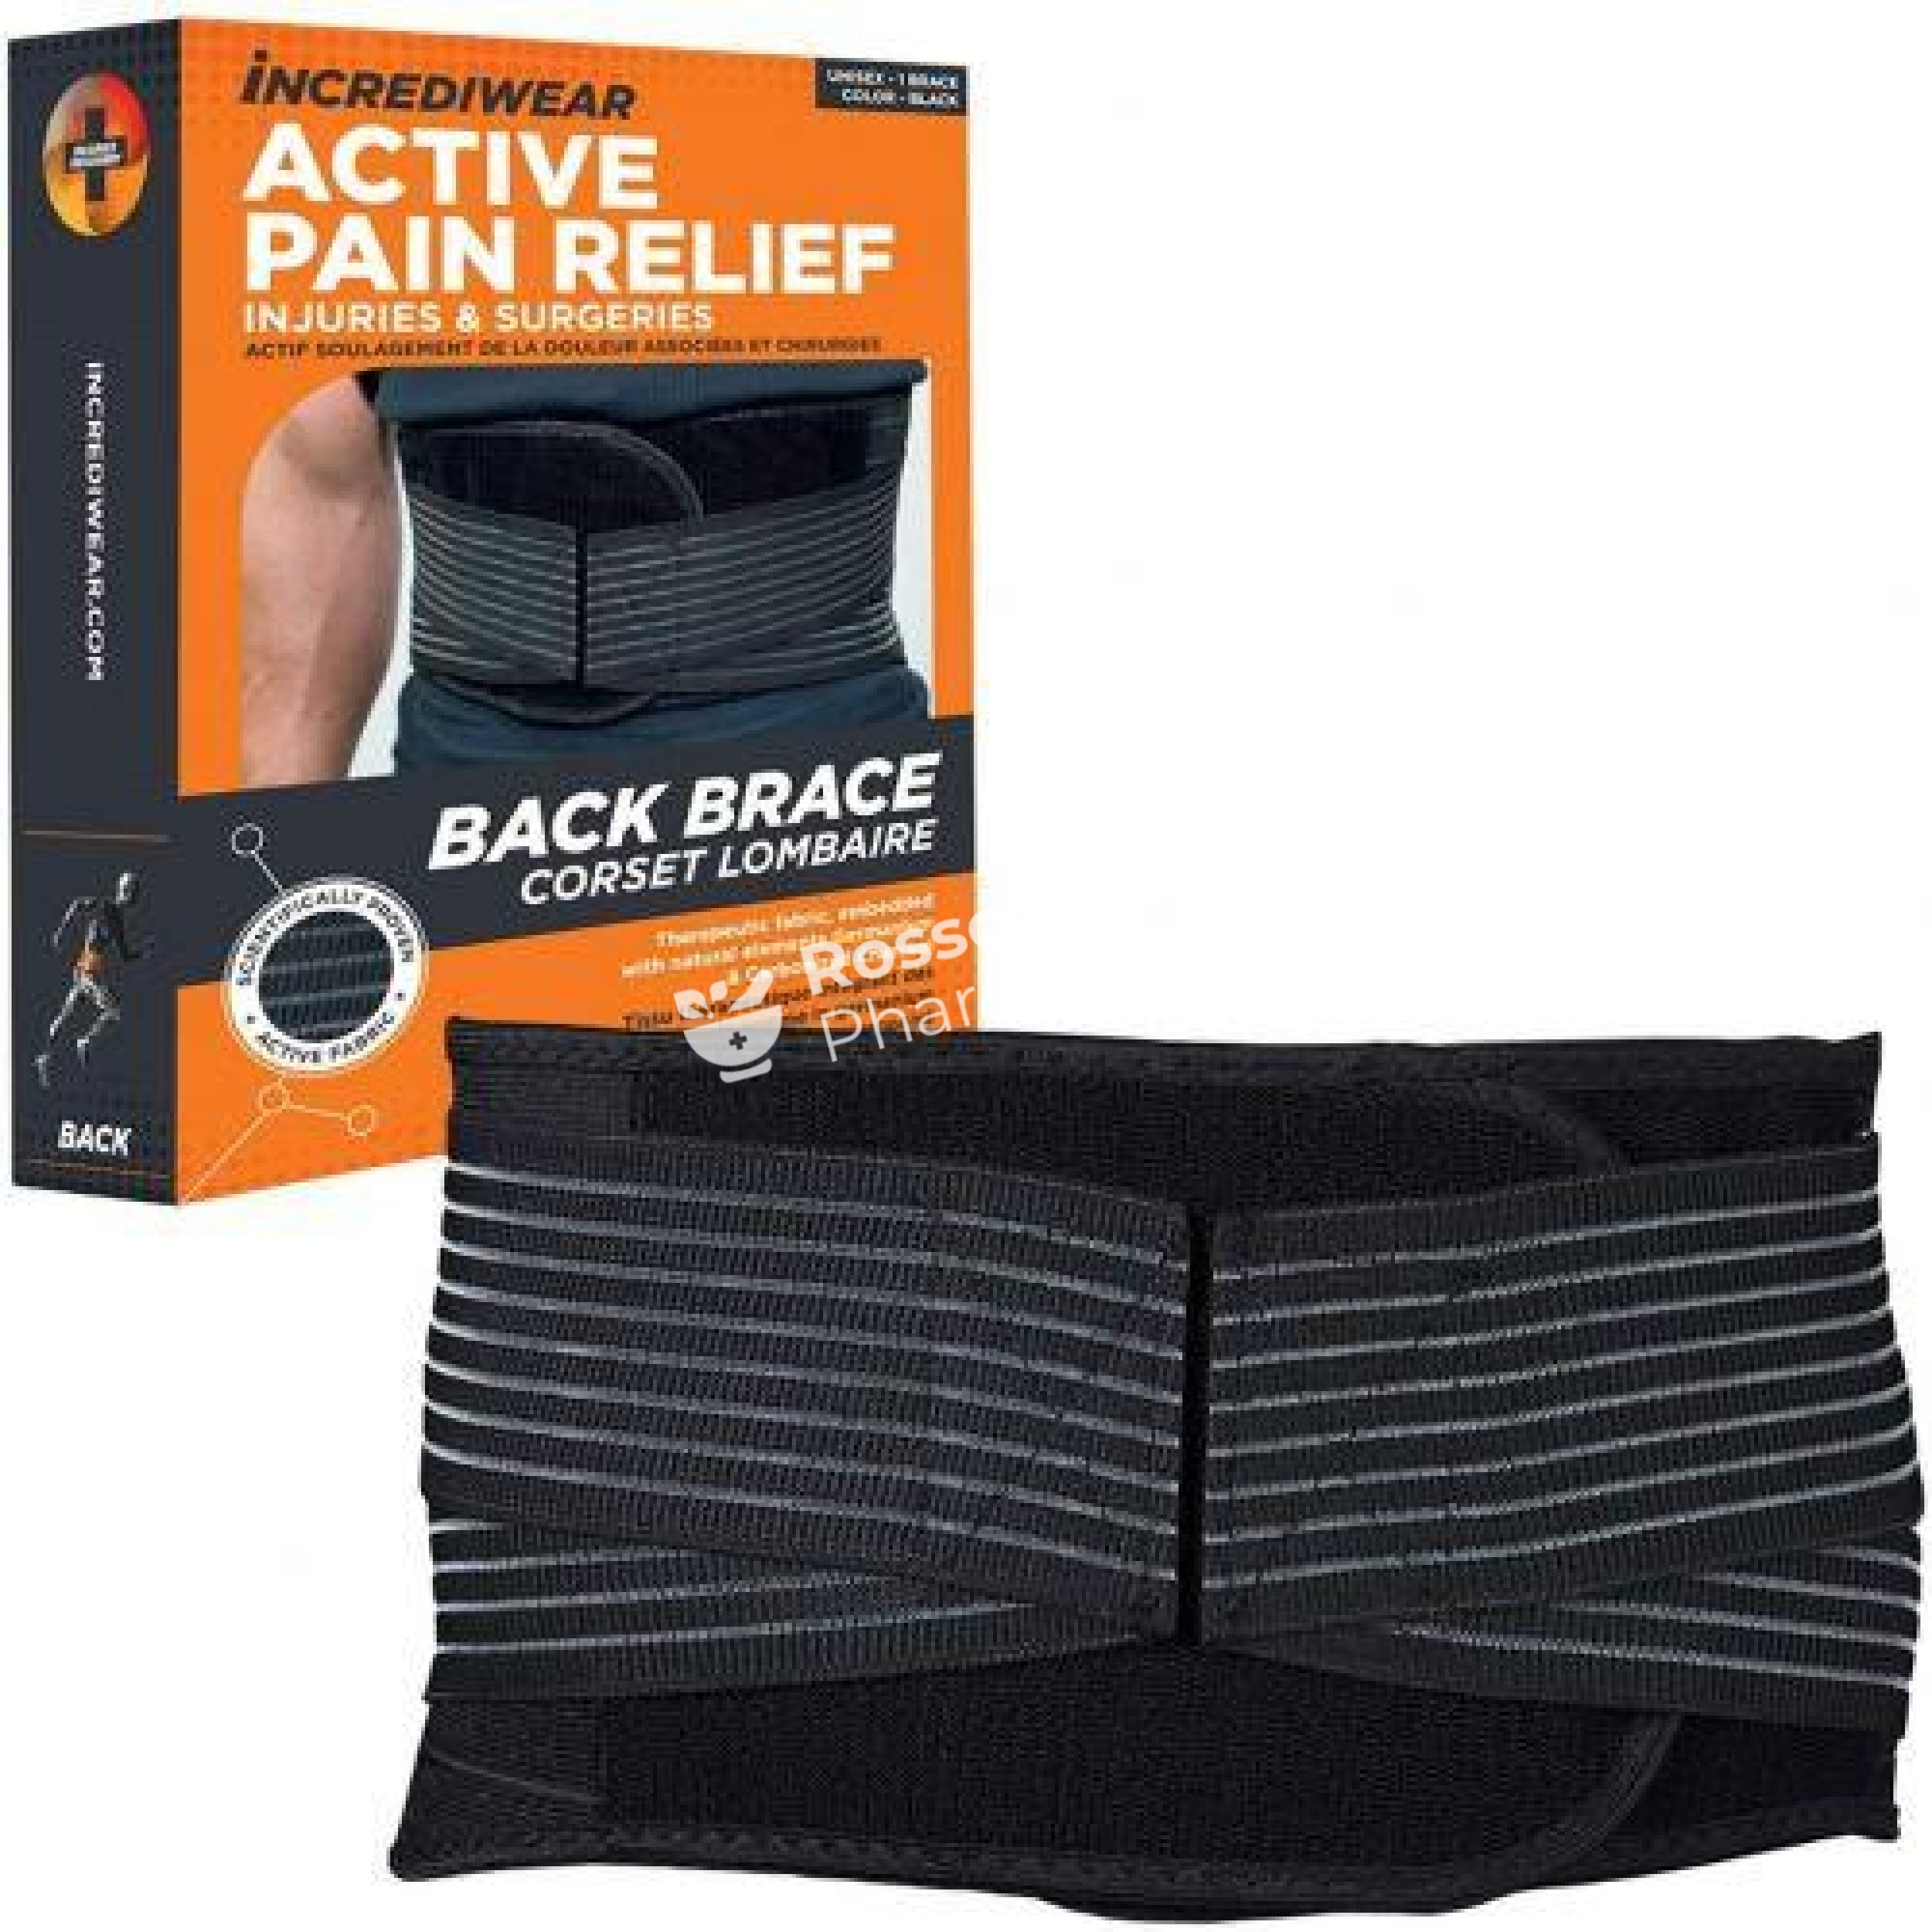 Incrediwear Active Pain Relief Back Brace - Black Supports & Compression Hoisery